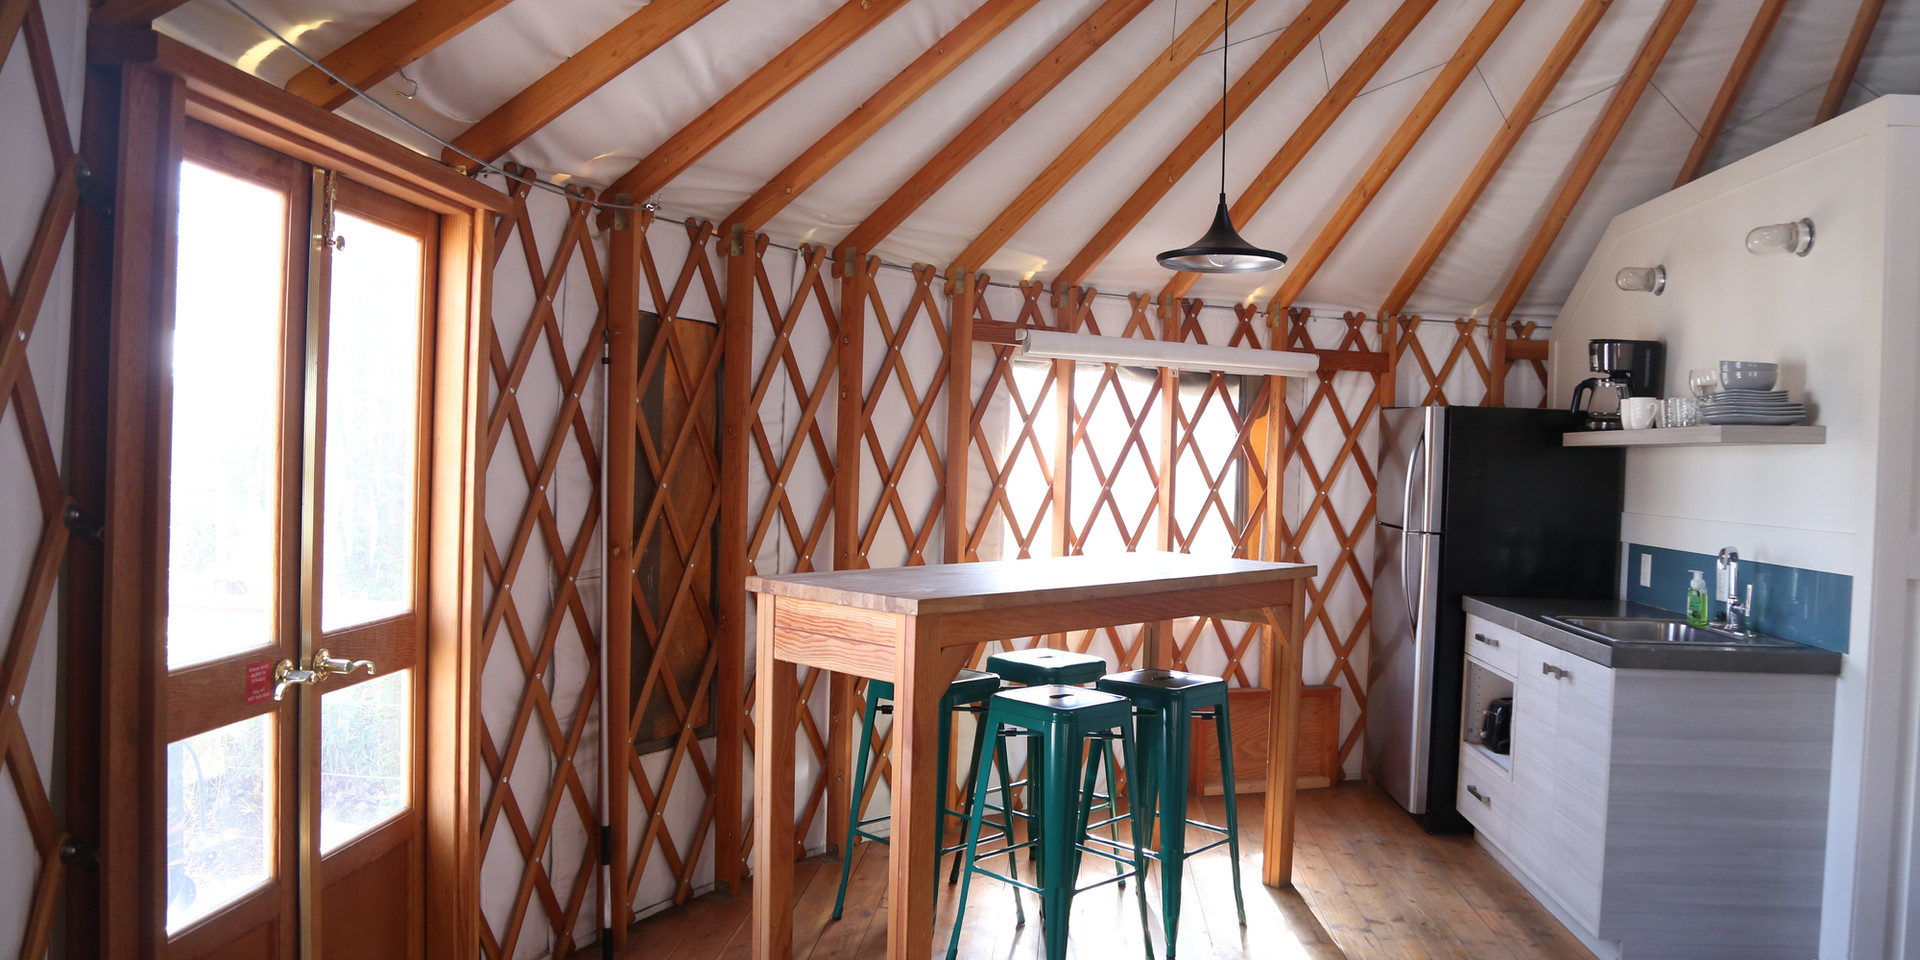 1 bedroom yurt